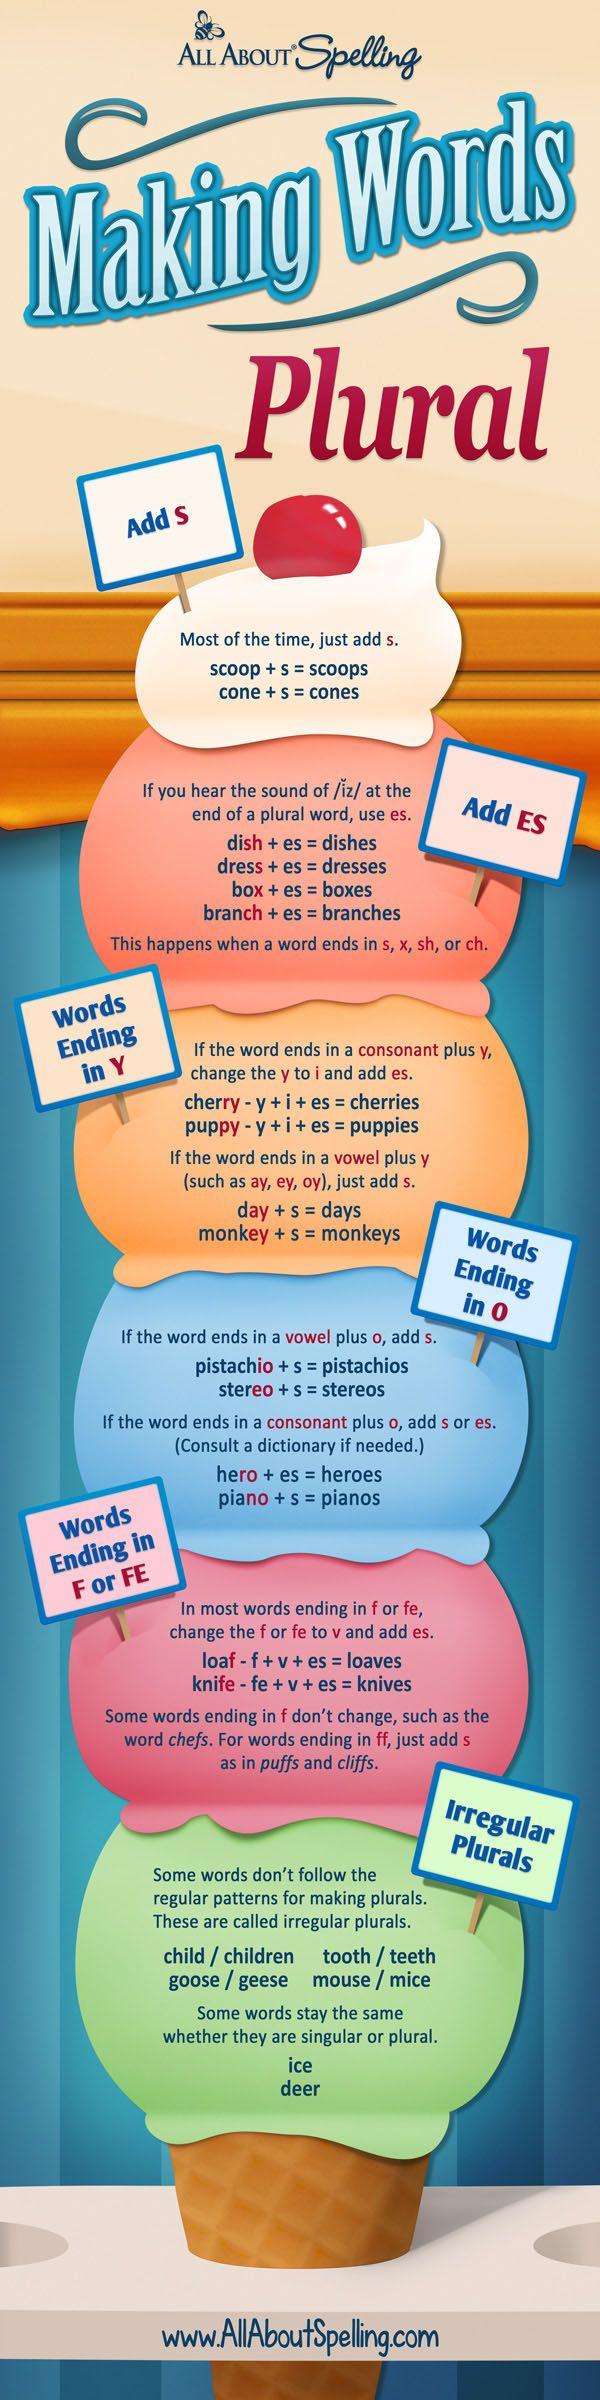 Why do we add S to some words but ES to others? And why on earth does knife become knives? Unravel these spelling mysteries with six simple rules.